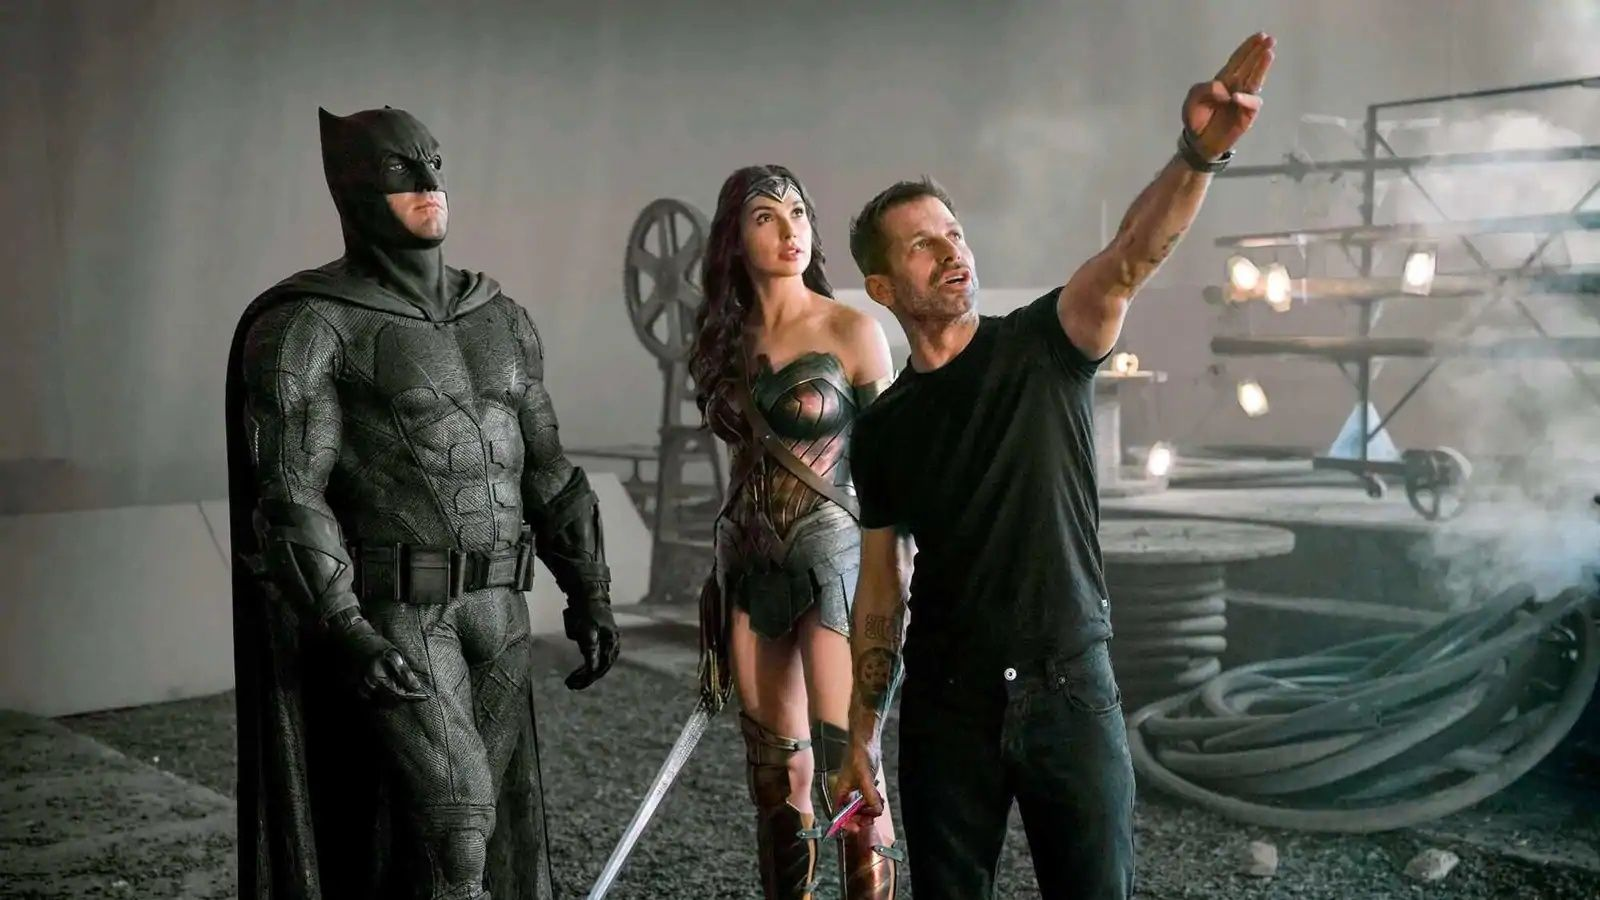 New images from Zack Snyder's Justice League movie shared